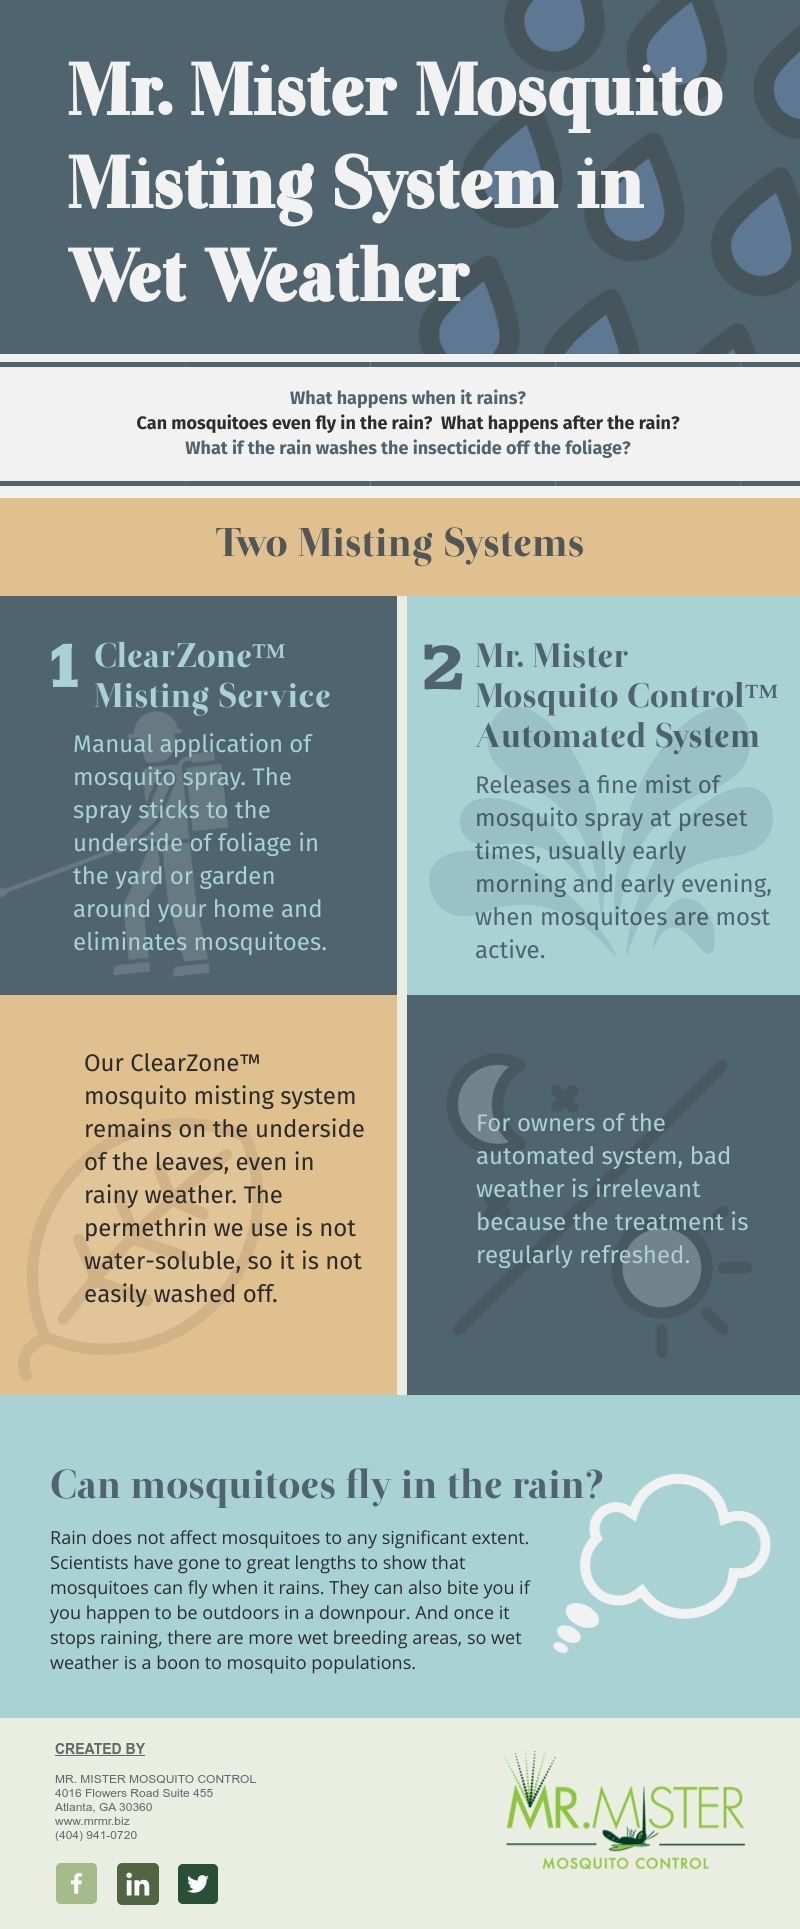 Mr. Mister Mosquito Misting System in Wet Weather [infographic]